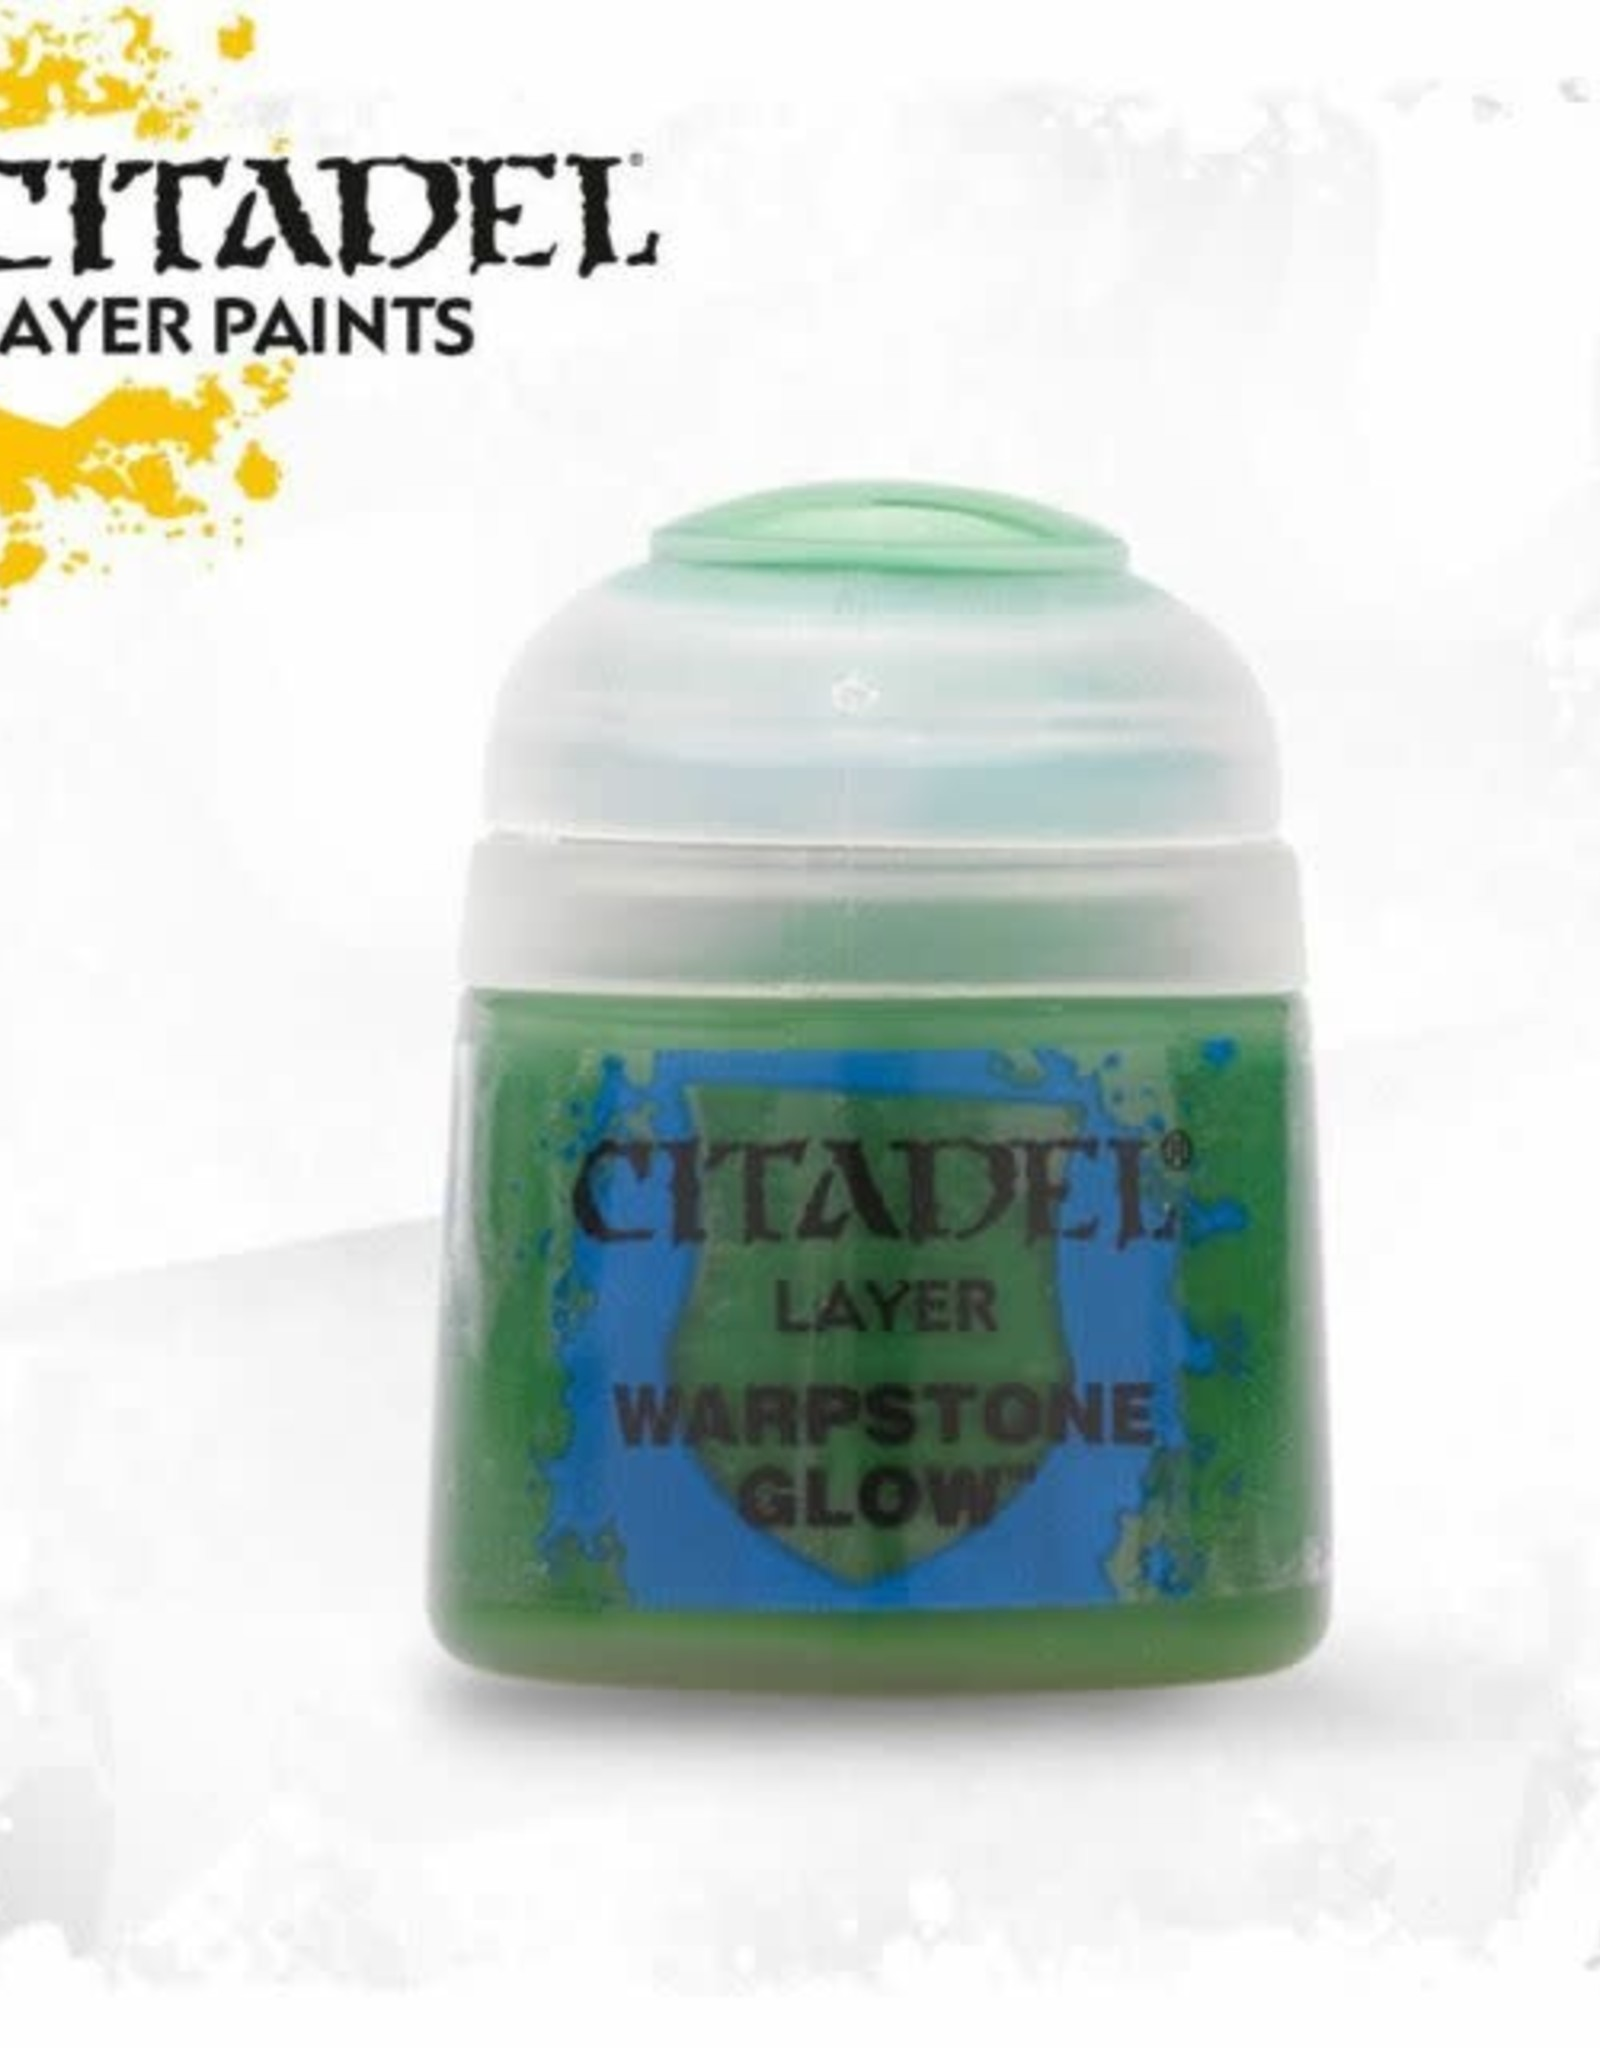 Games Workshop Citadel Paint: Layer - Warpstone Glow